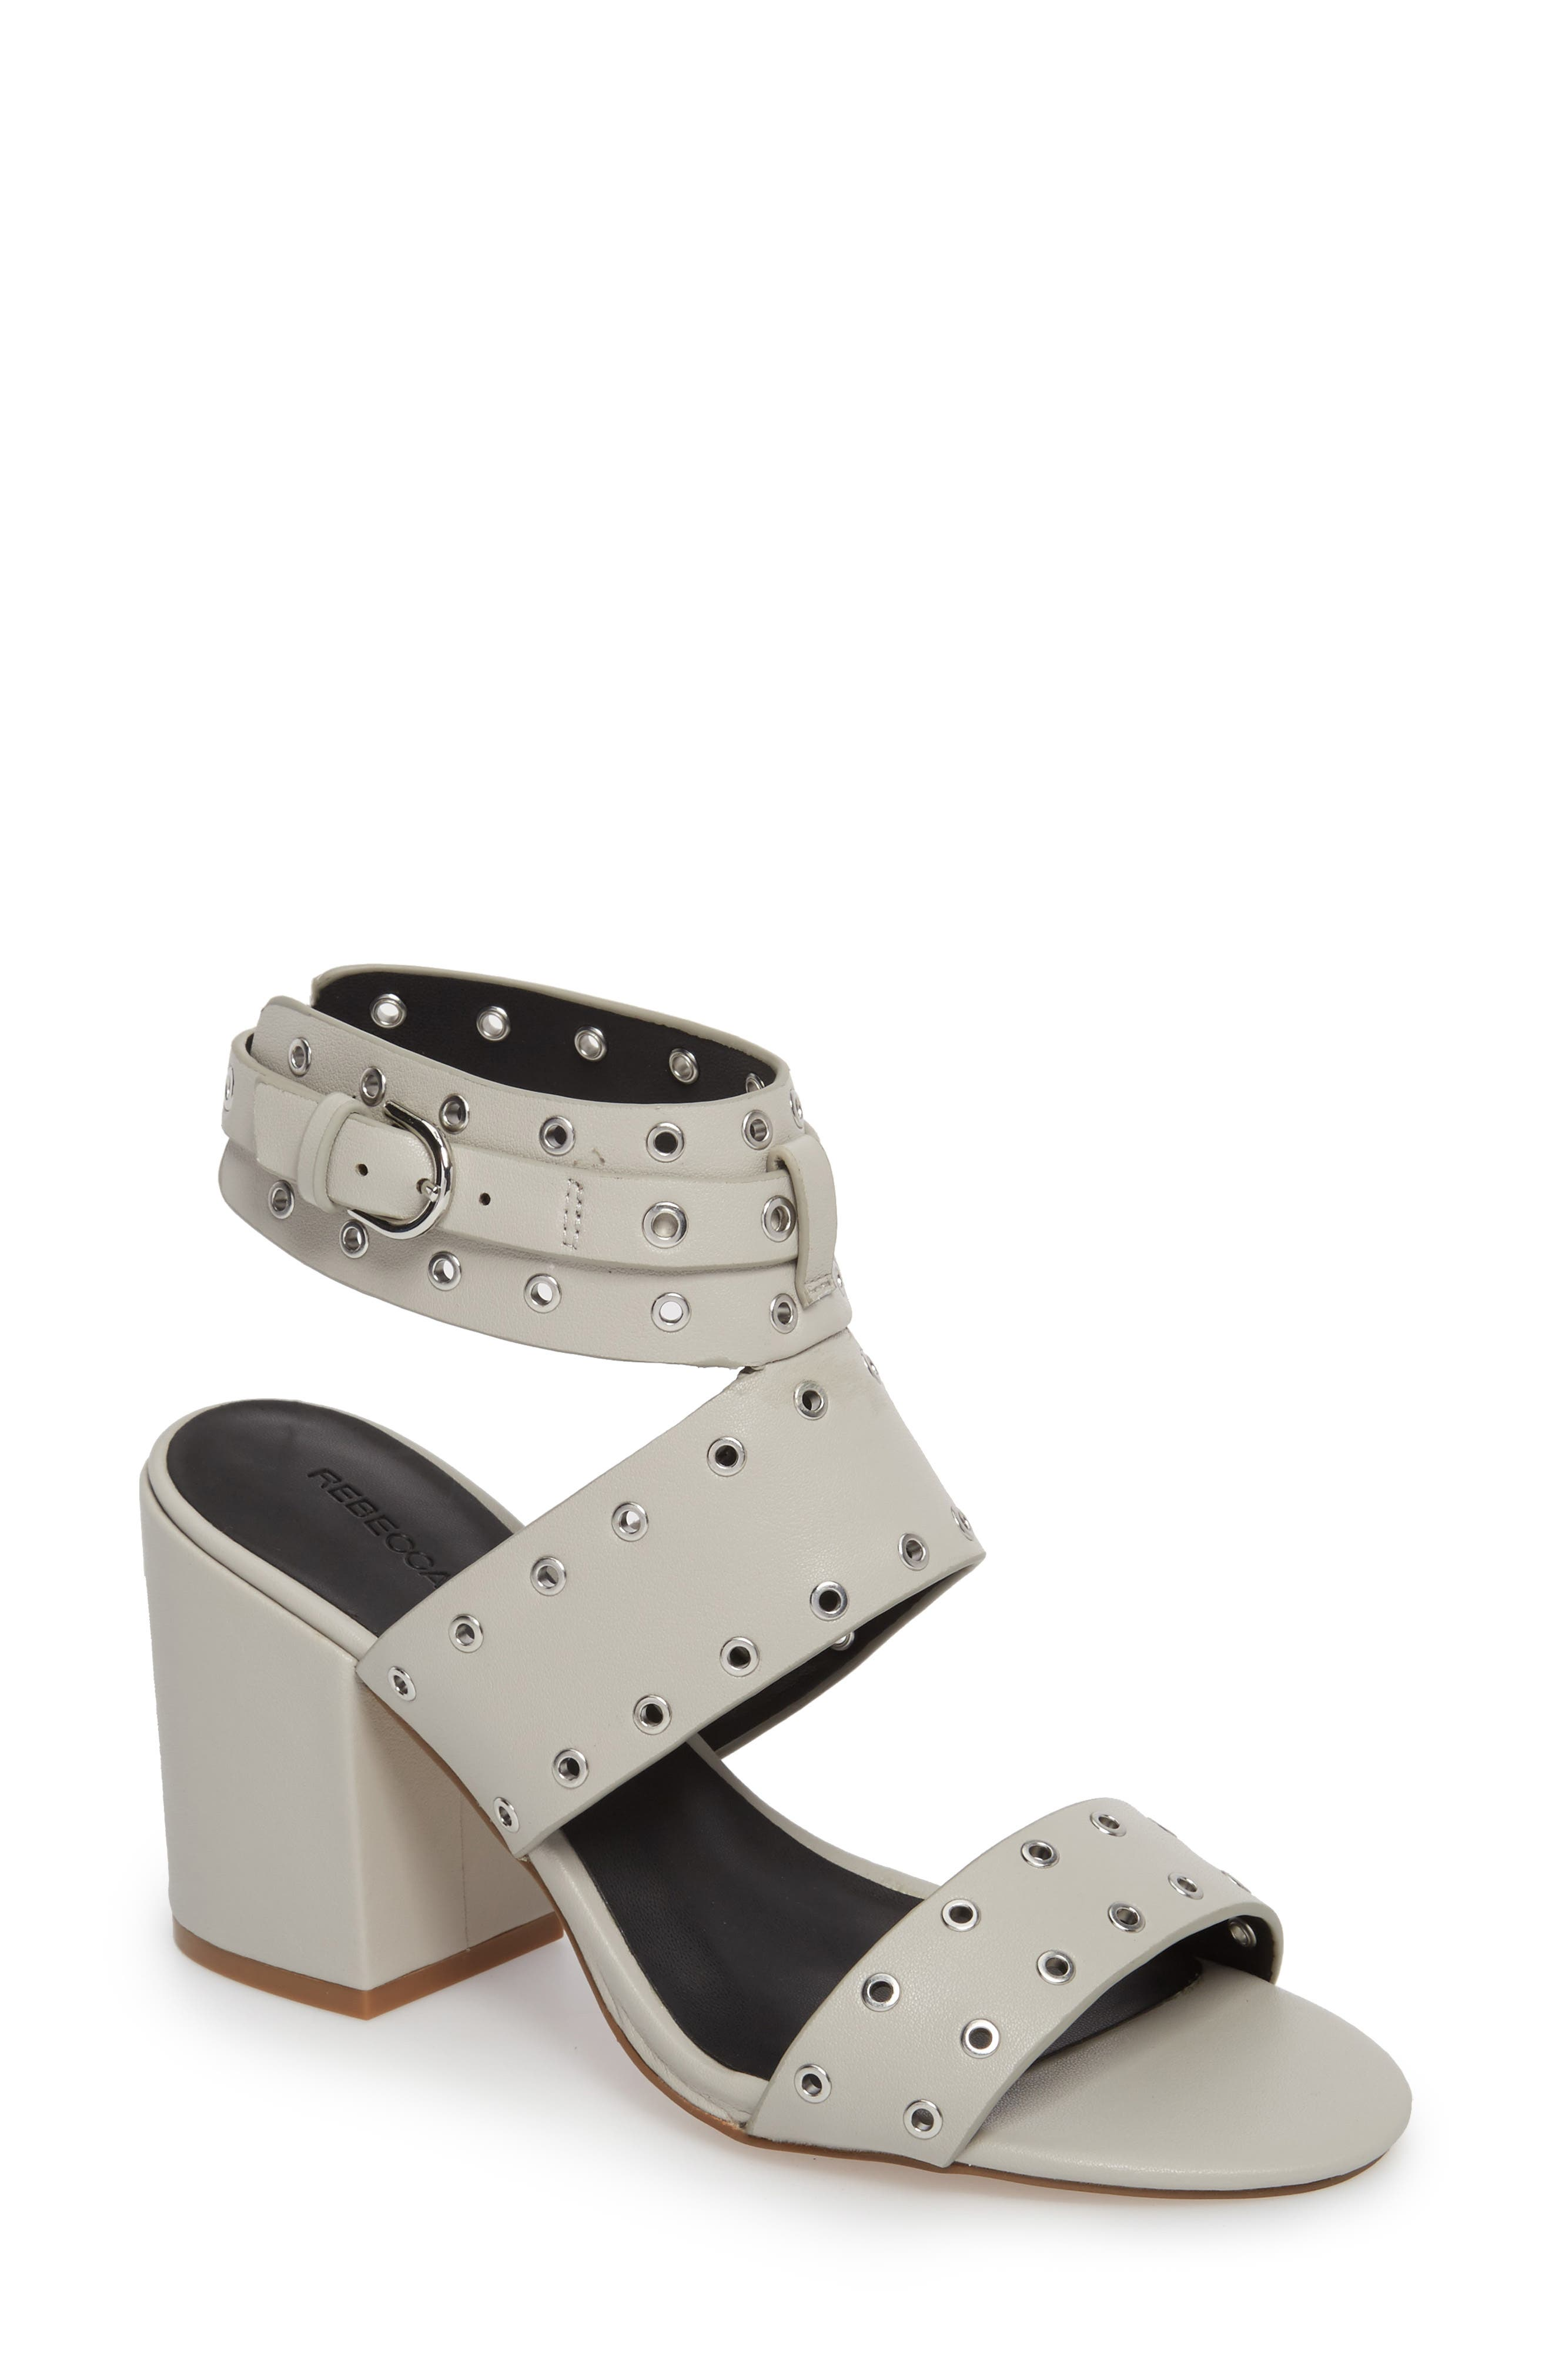 Carter Grommet Sandal,                         Main,                         color, Putty Calf Leather